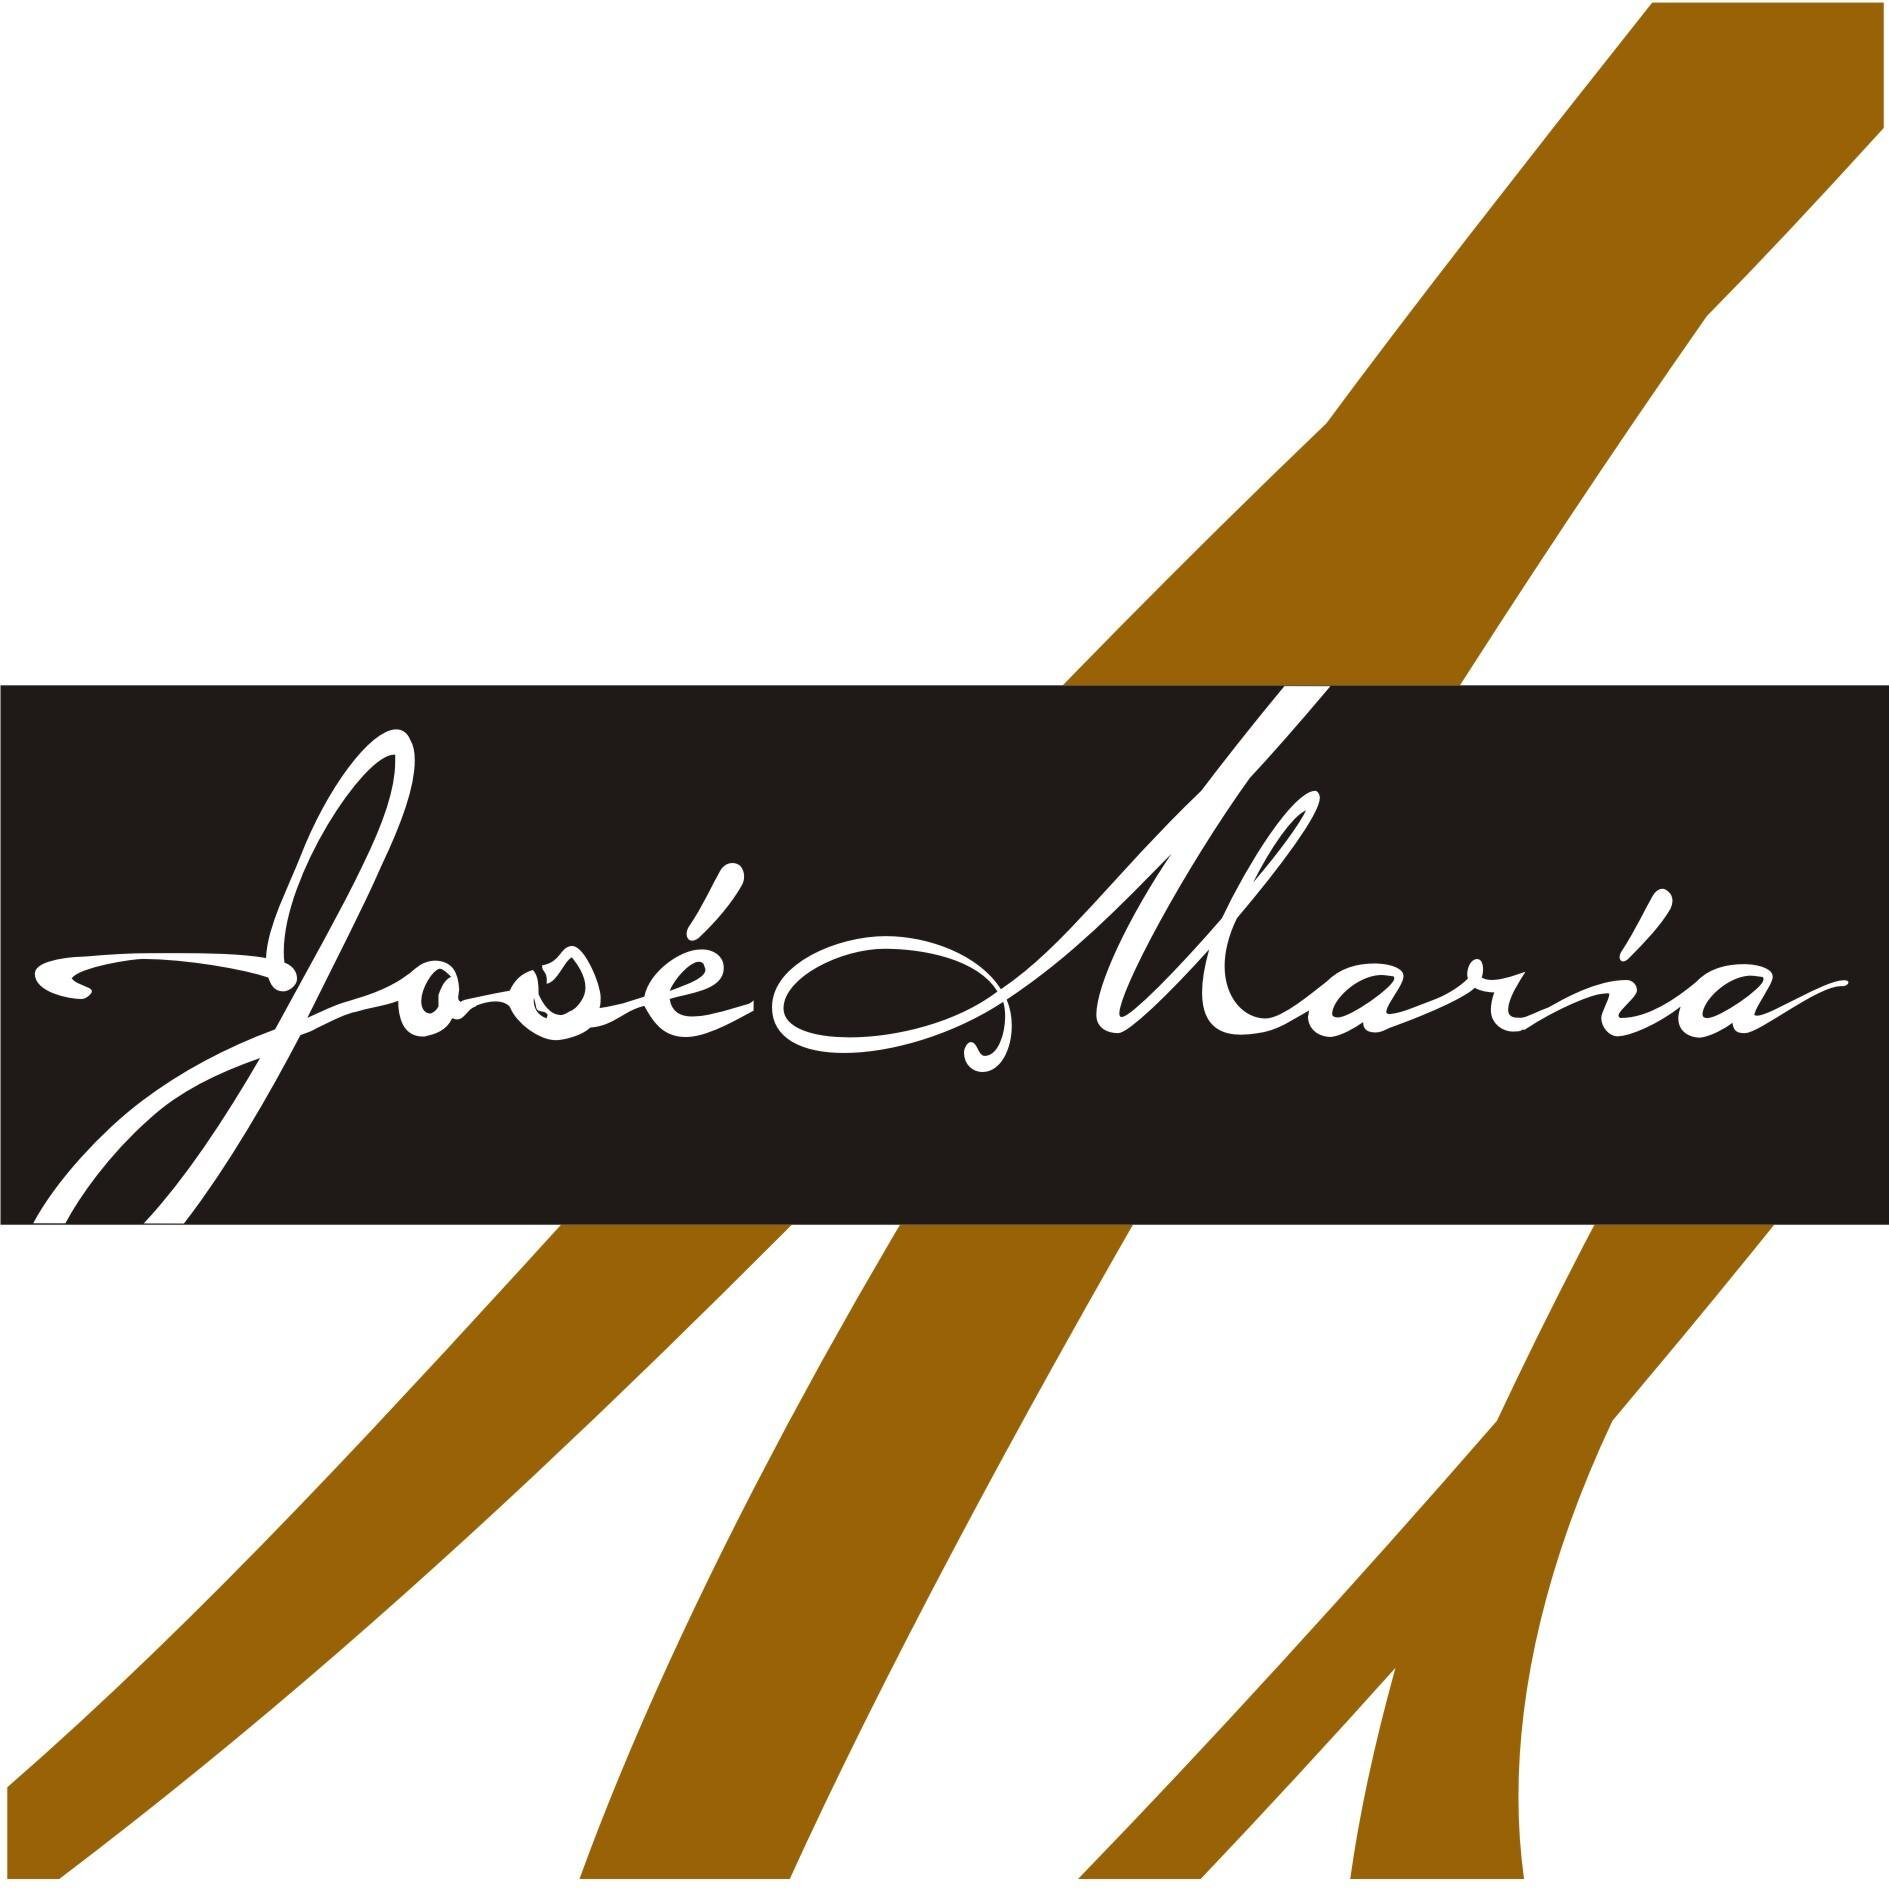 Muebles Jose Maria - Muebles Jos Mar A Mueblejosemaria Twitter[mjhdah]https://farm9.static.flickr.com/8052/8086974715_885c6b0794_b.jpg